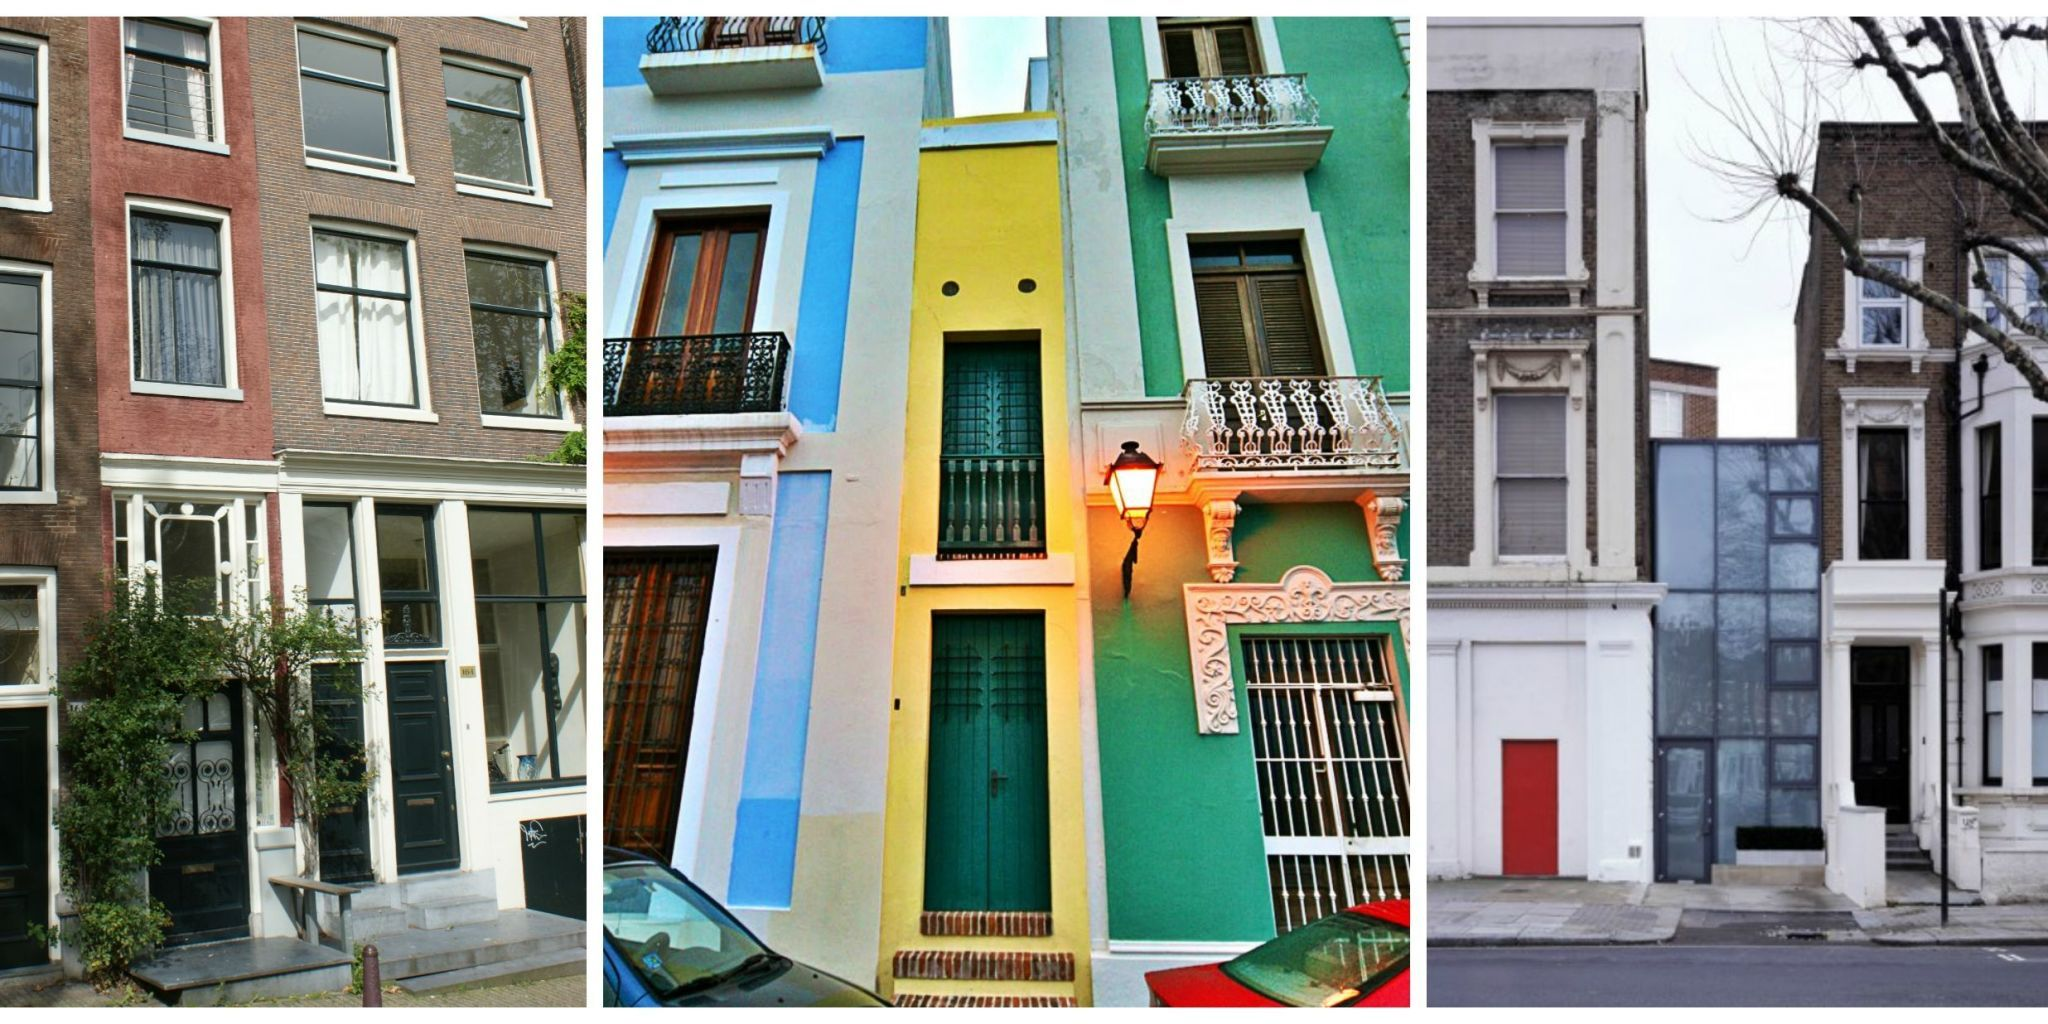 9 of the World's Skinniest Houses